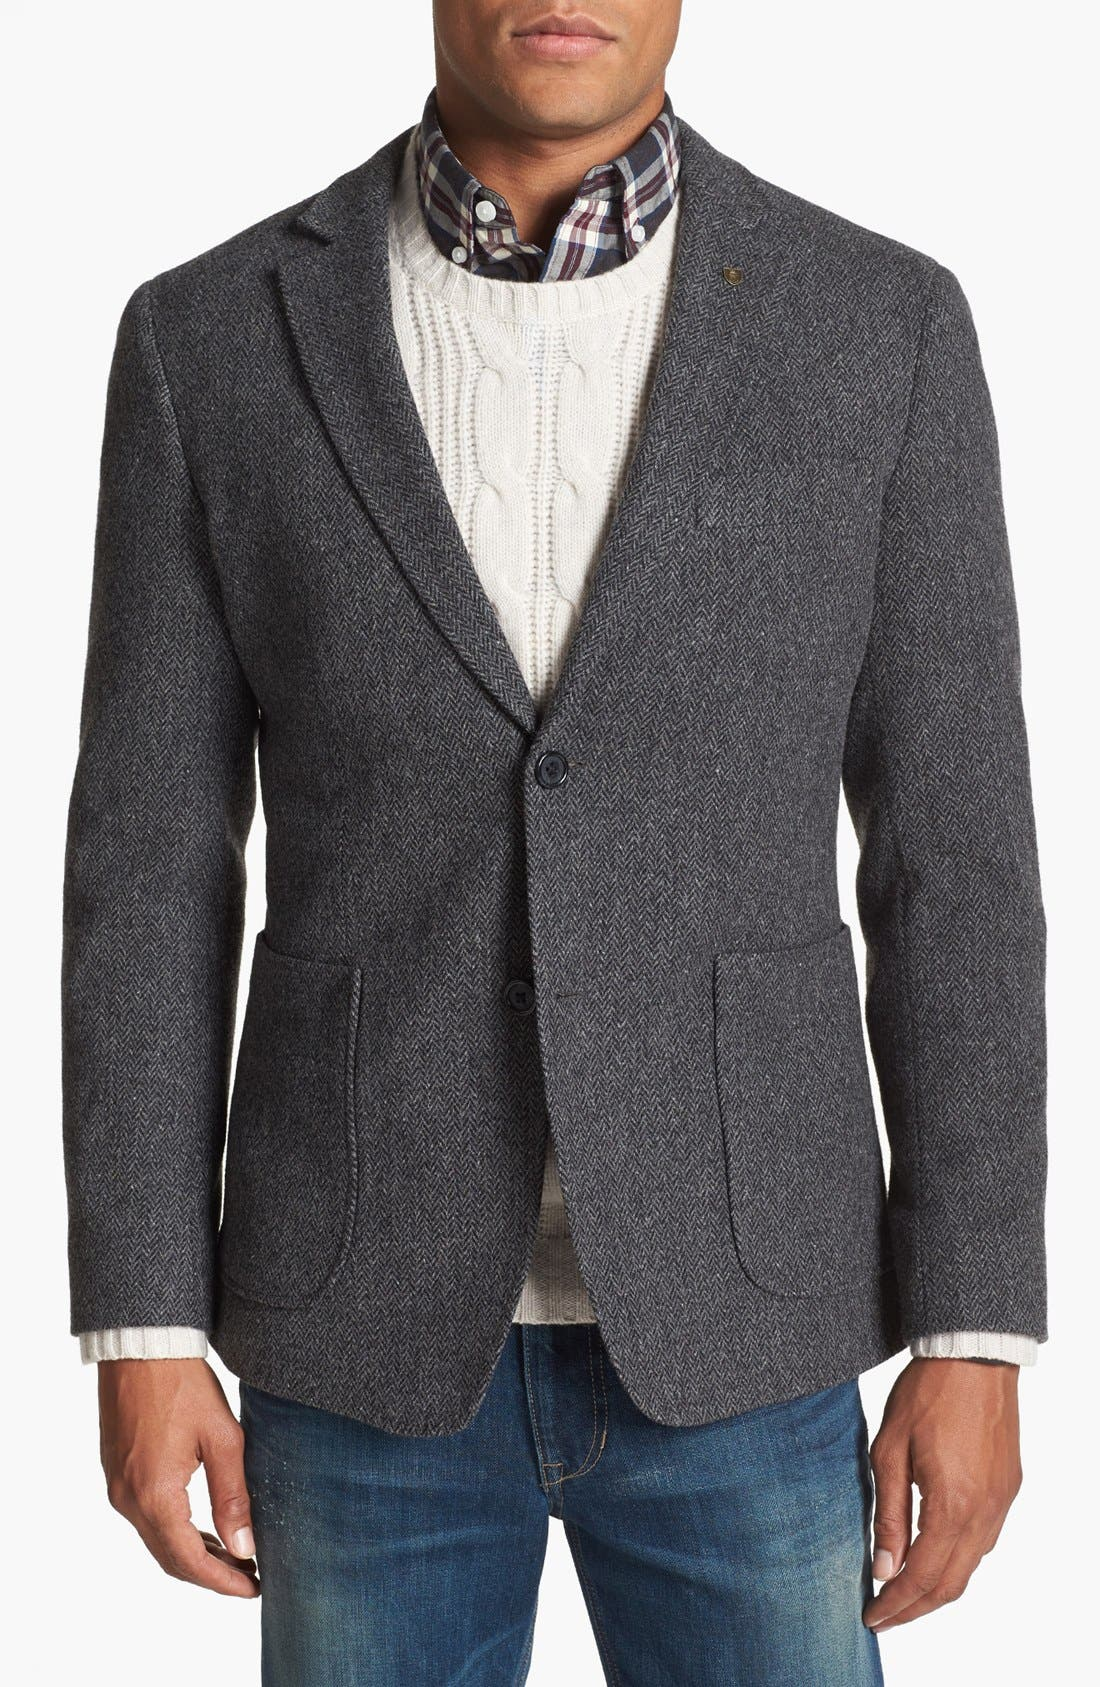 Main Image - Wallin & Bros. Extra Trim Fit Herringbone Sportcoat